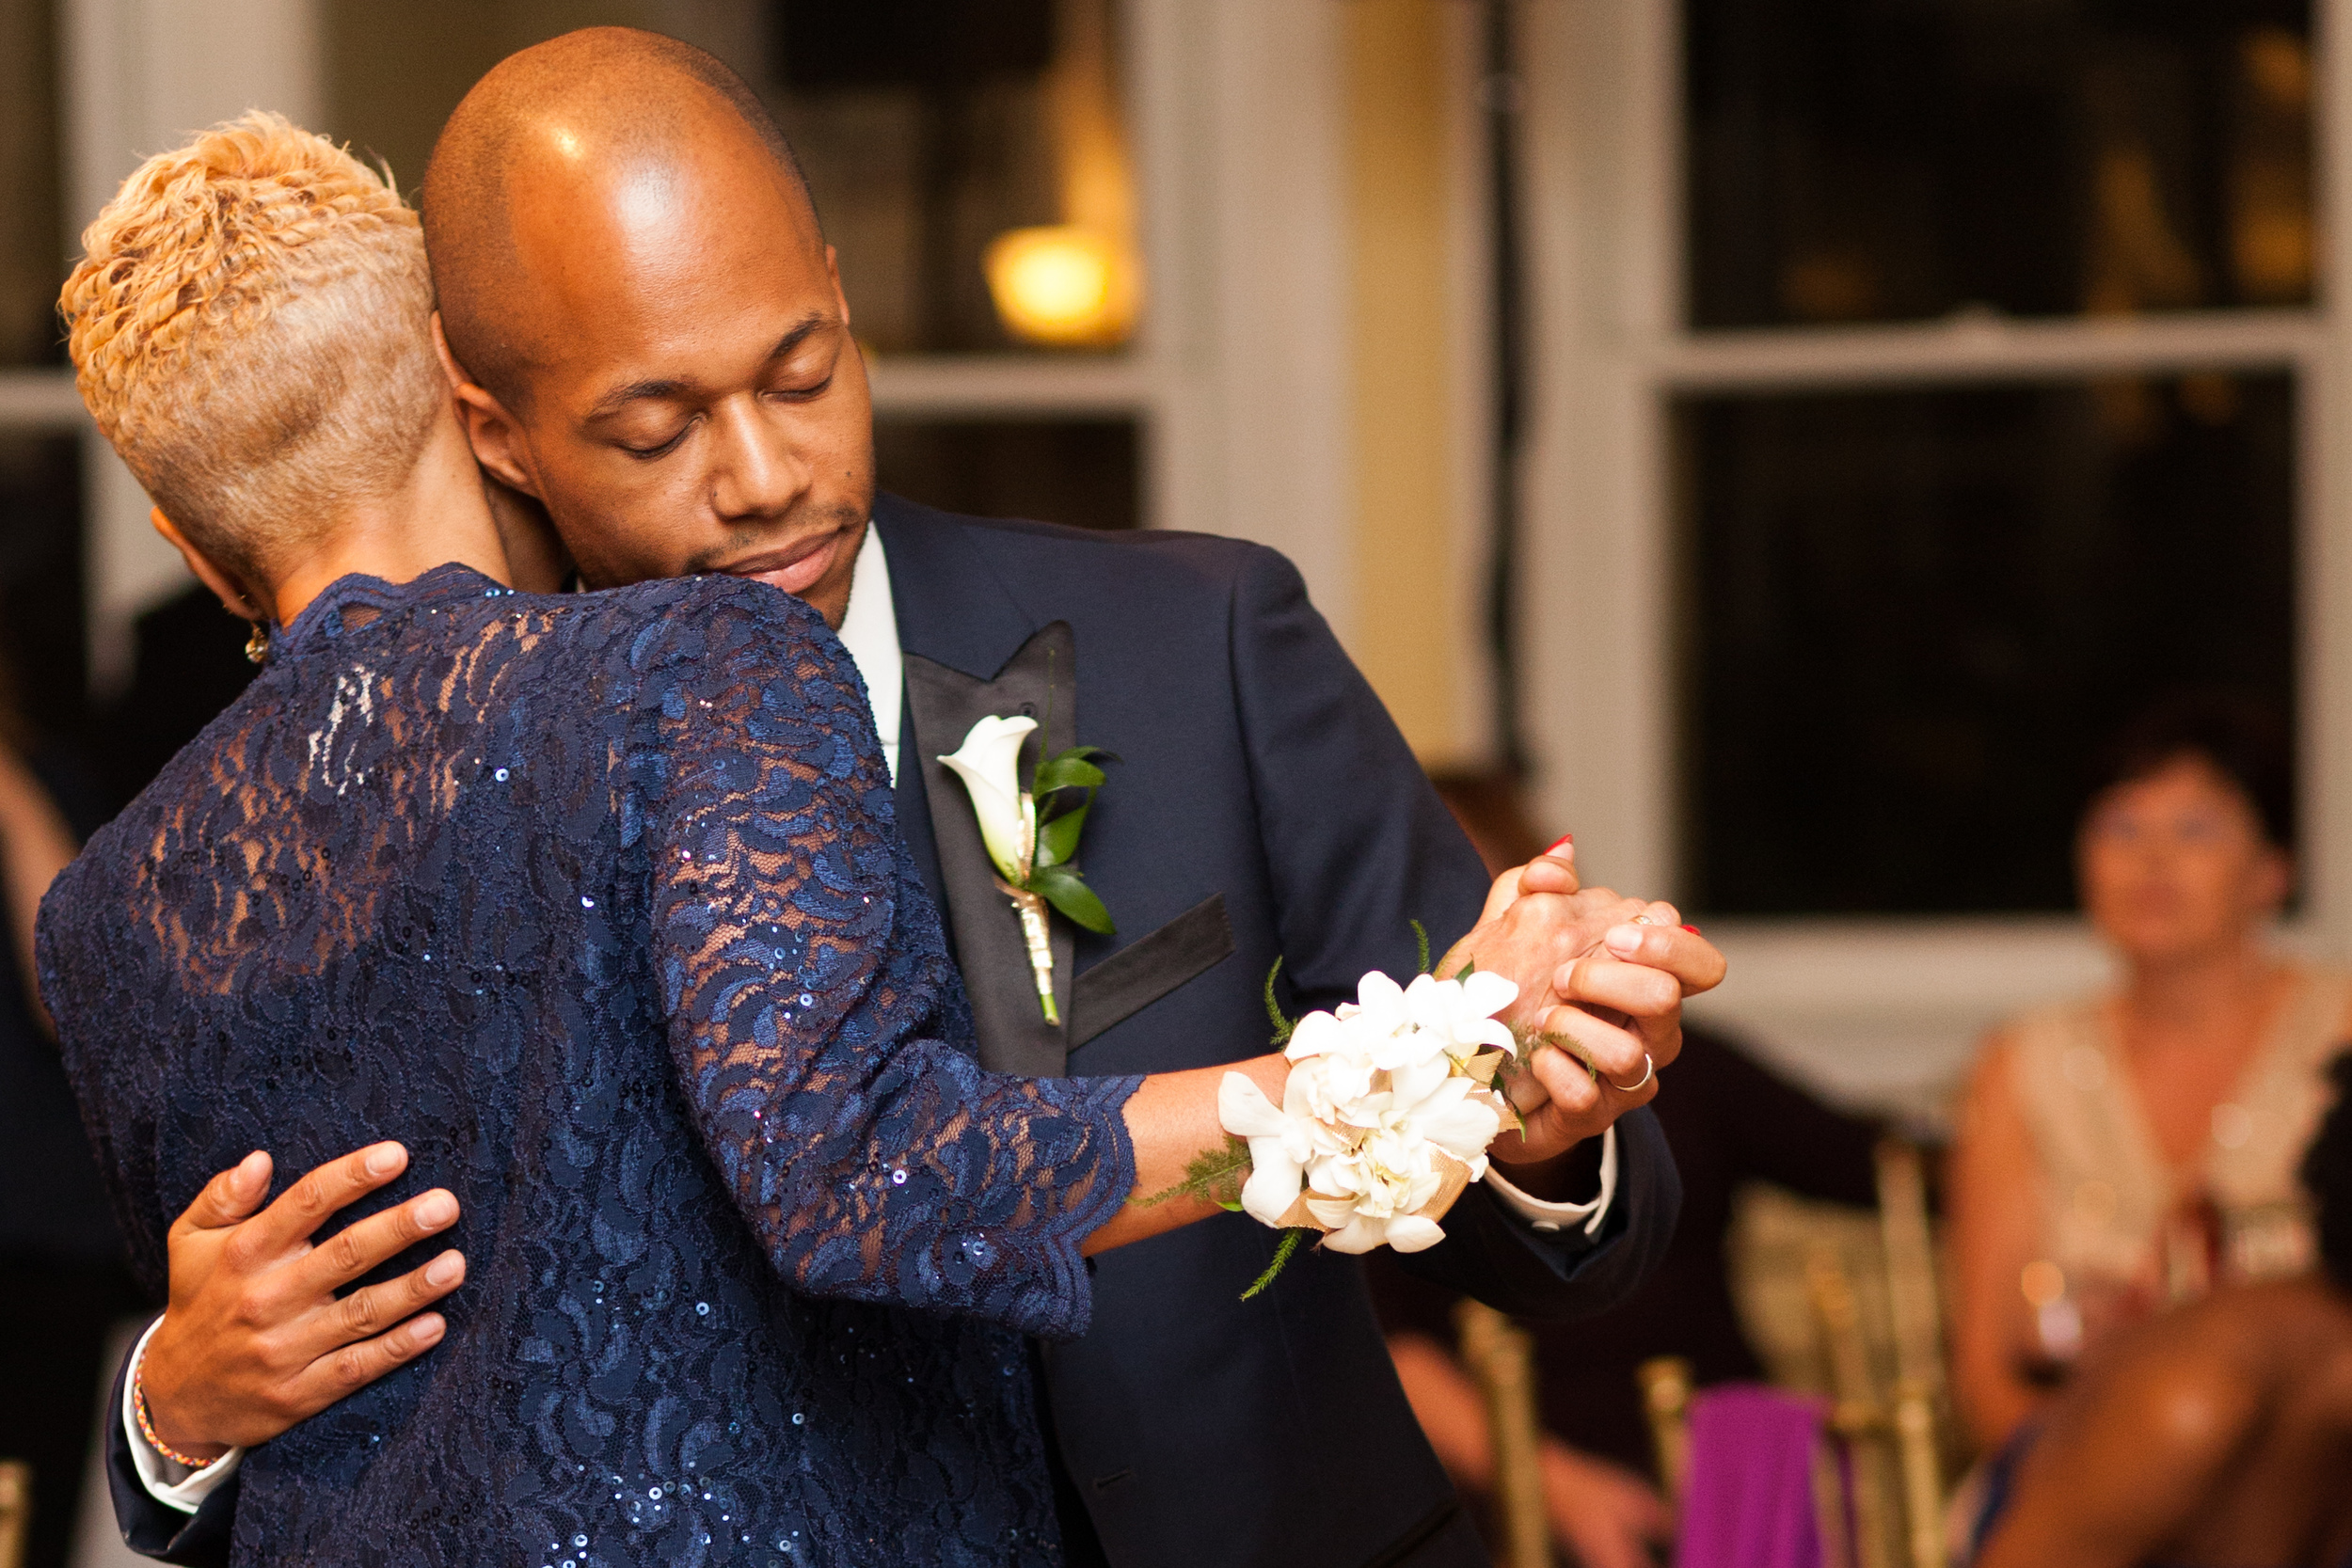 Anthony+Darius_First-Dances-0016-October-112014.jpg